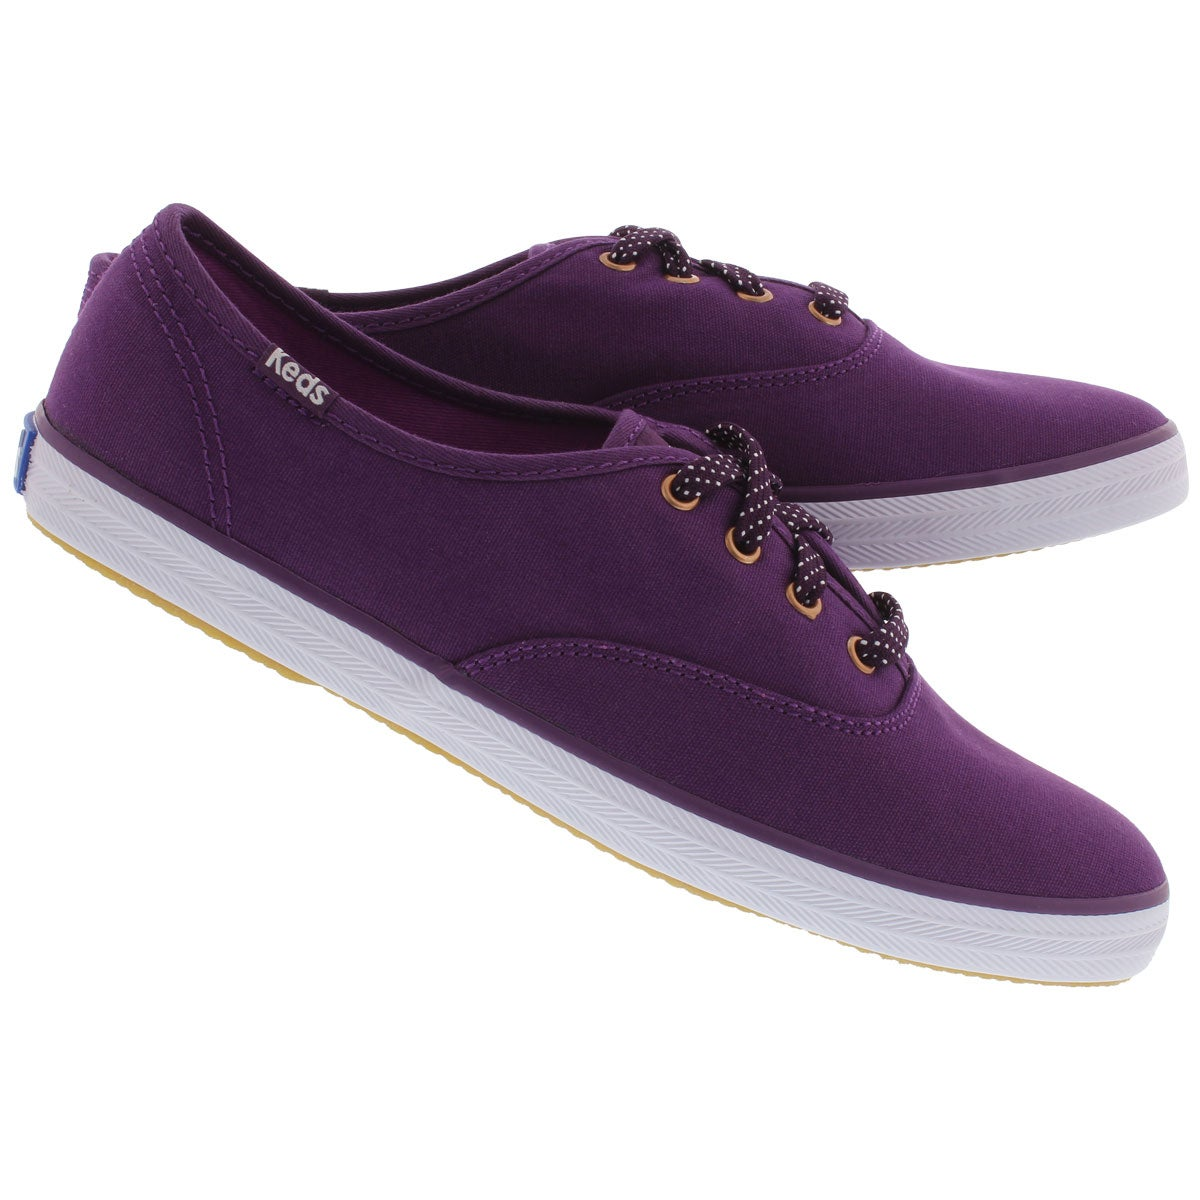 Lds Champion Solid purple canvas sneaker